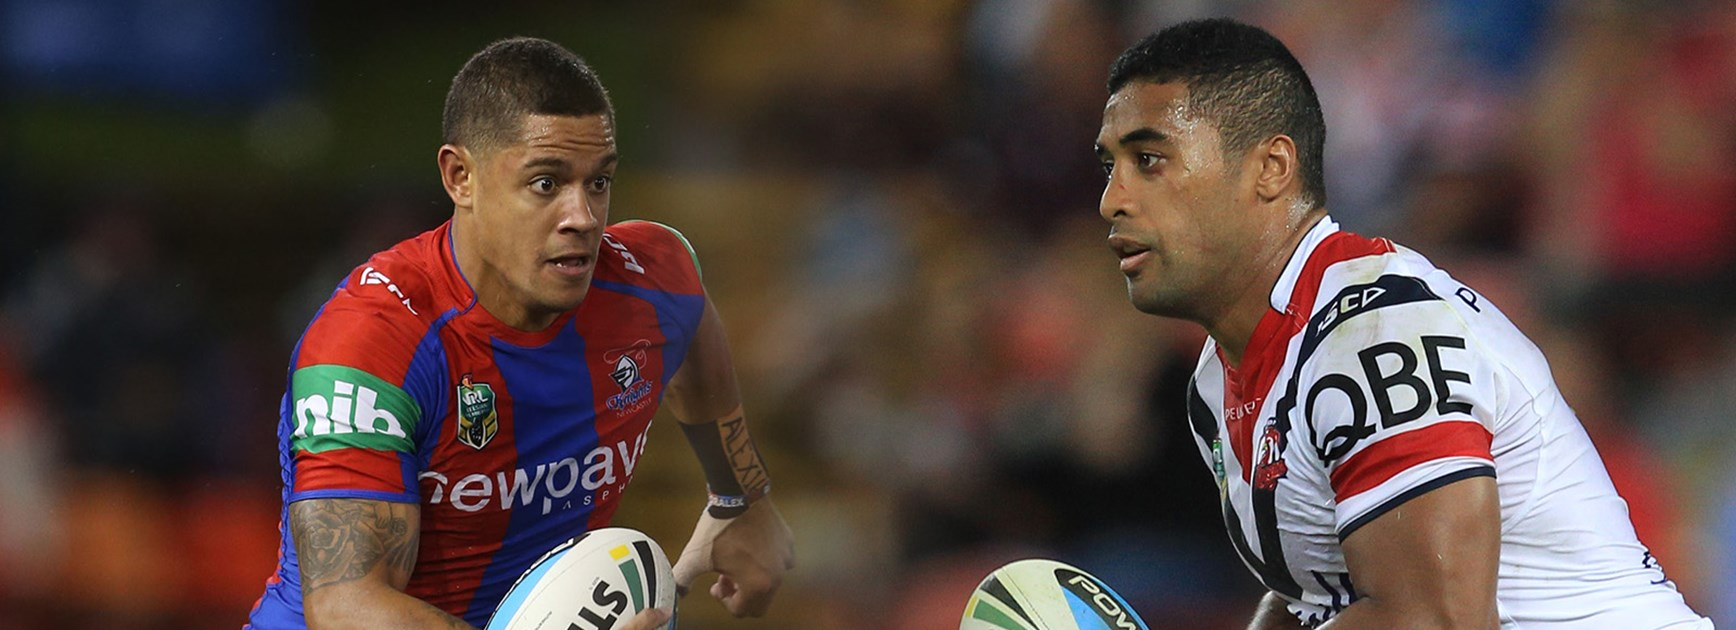 Dane Gagai and Michael Jennings will be looking to add to their try tallies on Sunday afternoon.